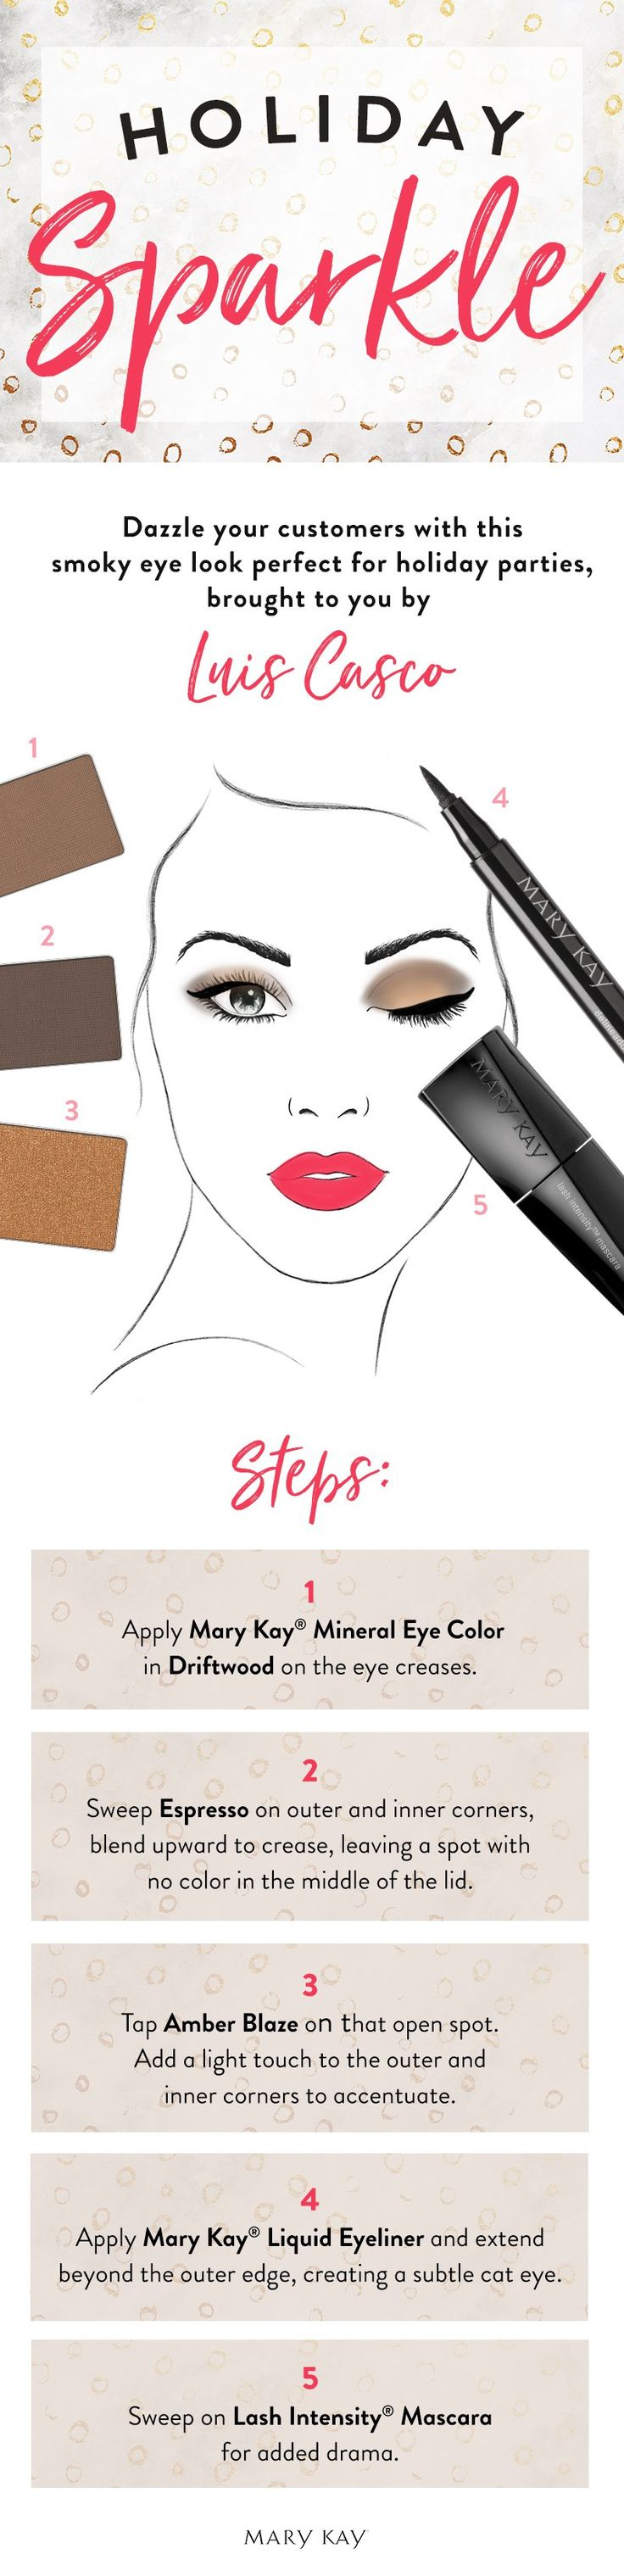 Holiday party perfection! Help your customers achieve a sultry smoky eye with these tips from Mary Kay makeup artist Luis Casco.